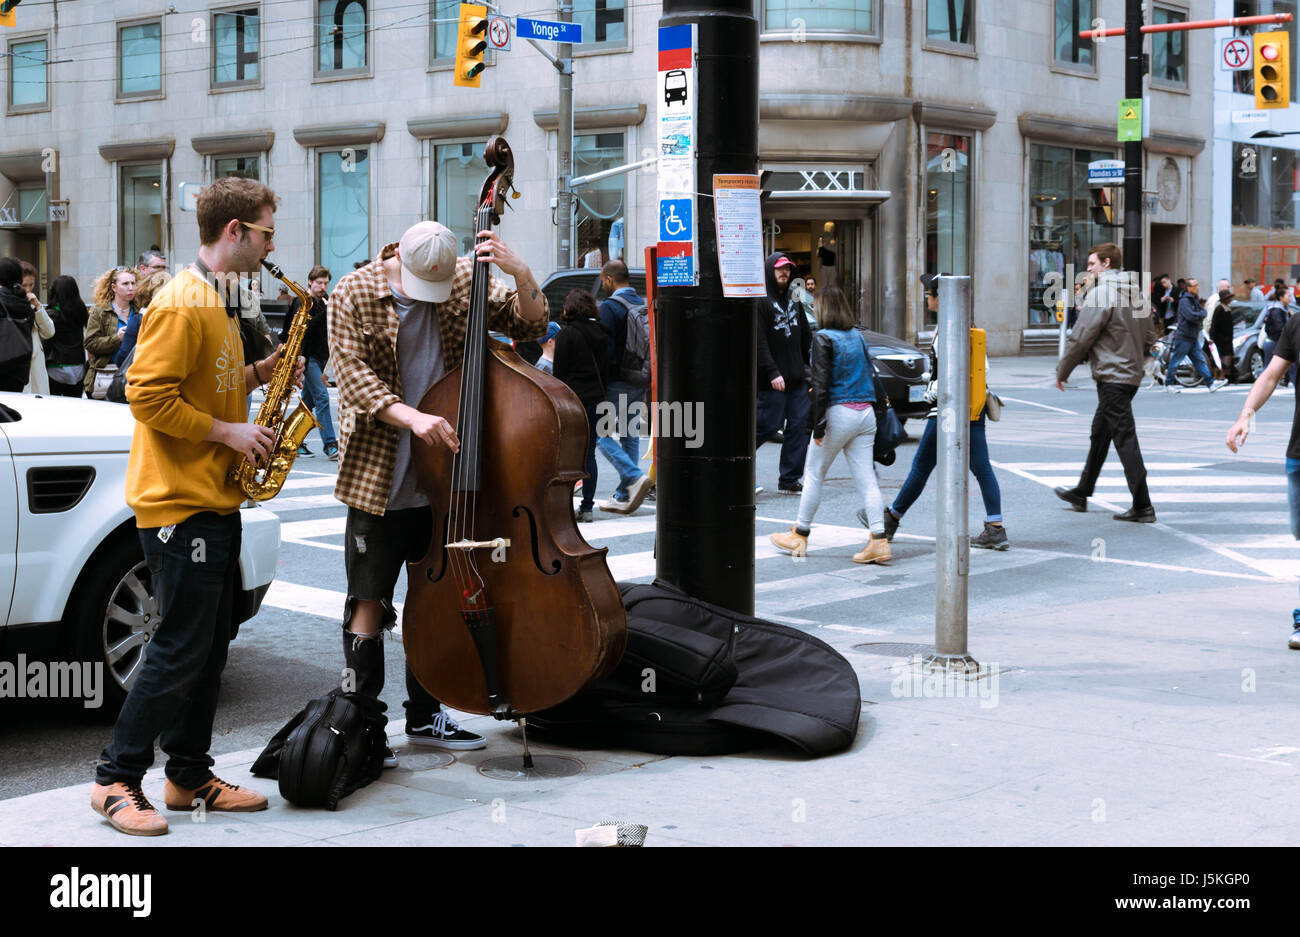 Two musicians performing in Eaton Centre in Toronto - Stock Image